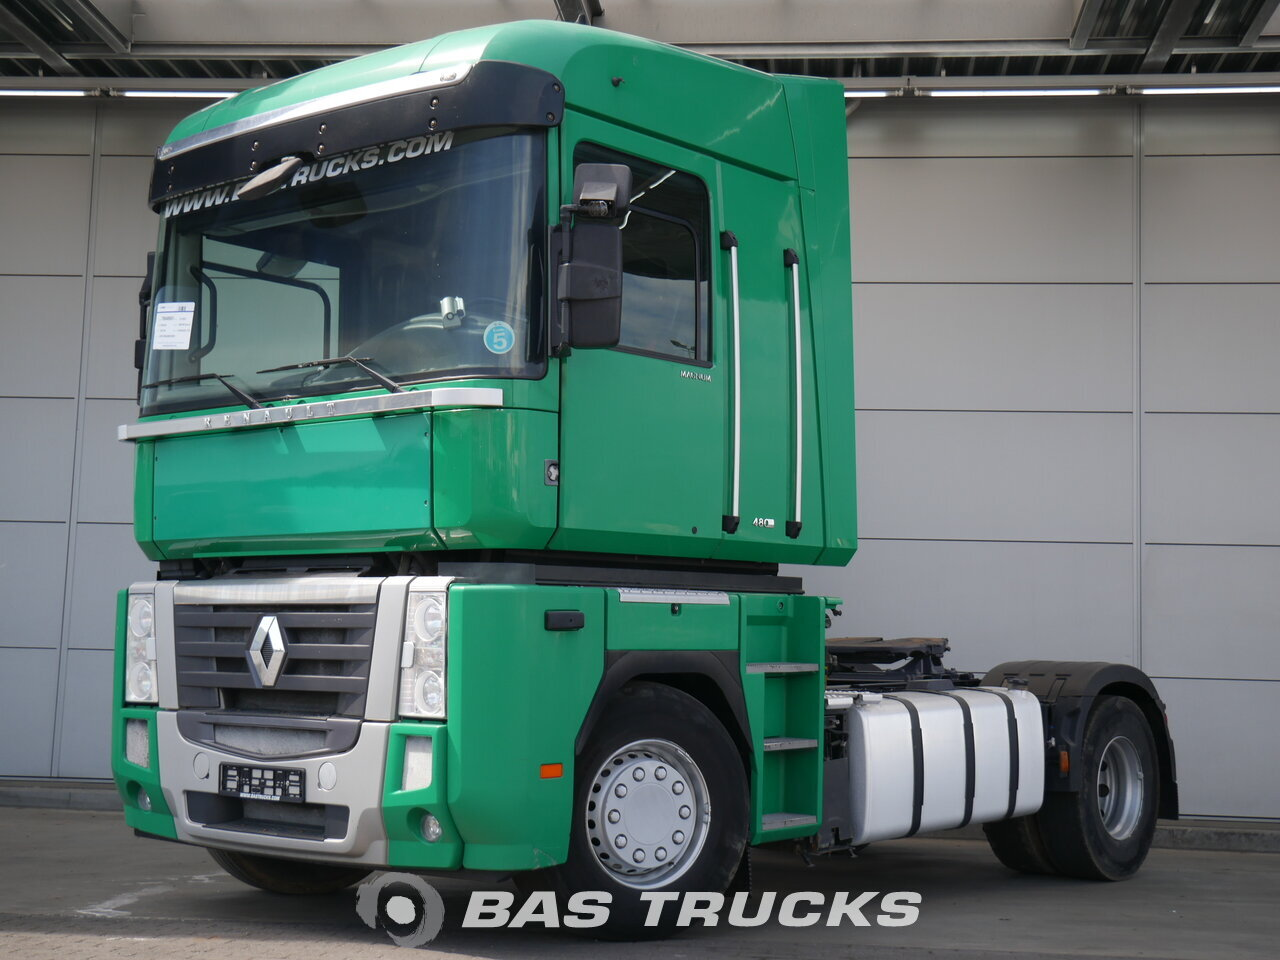 renault magnum 480 tracteur euro 5 17900 bas trucks. Black Bedroom Furniture Sets. Home Design Ideas